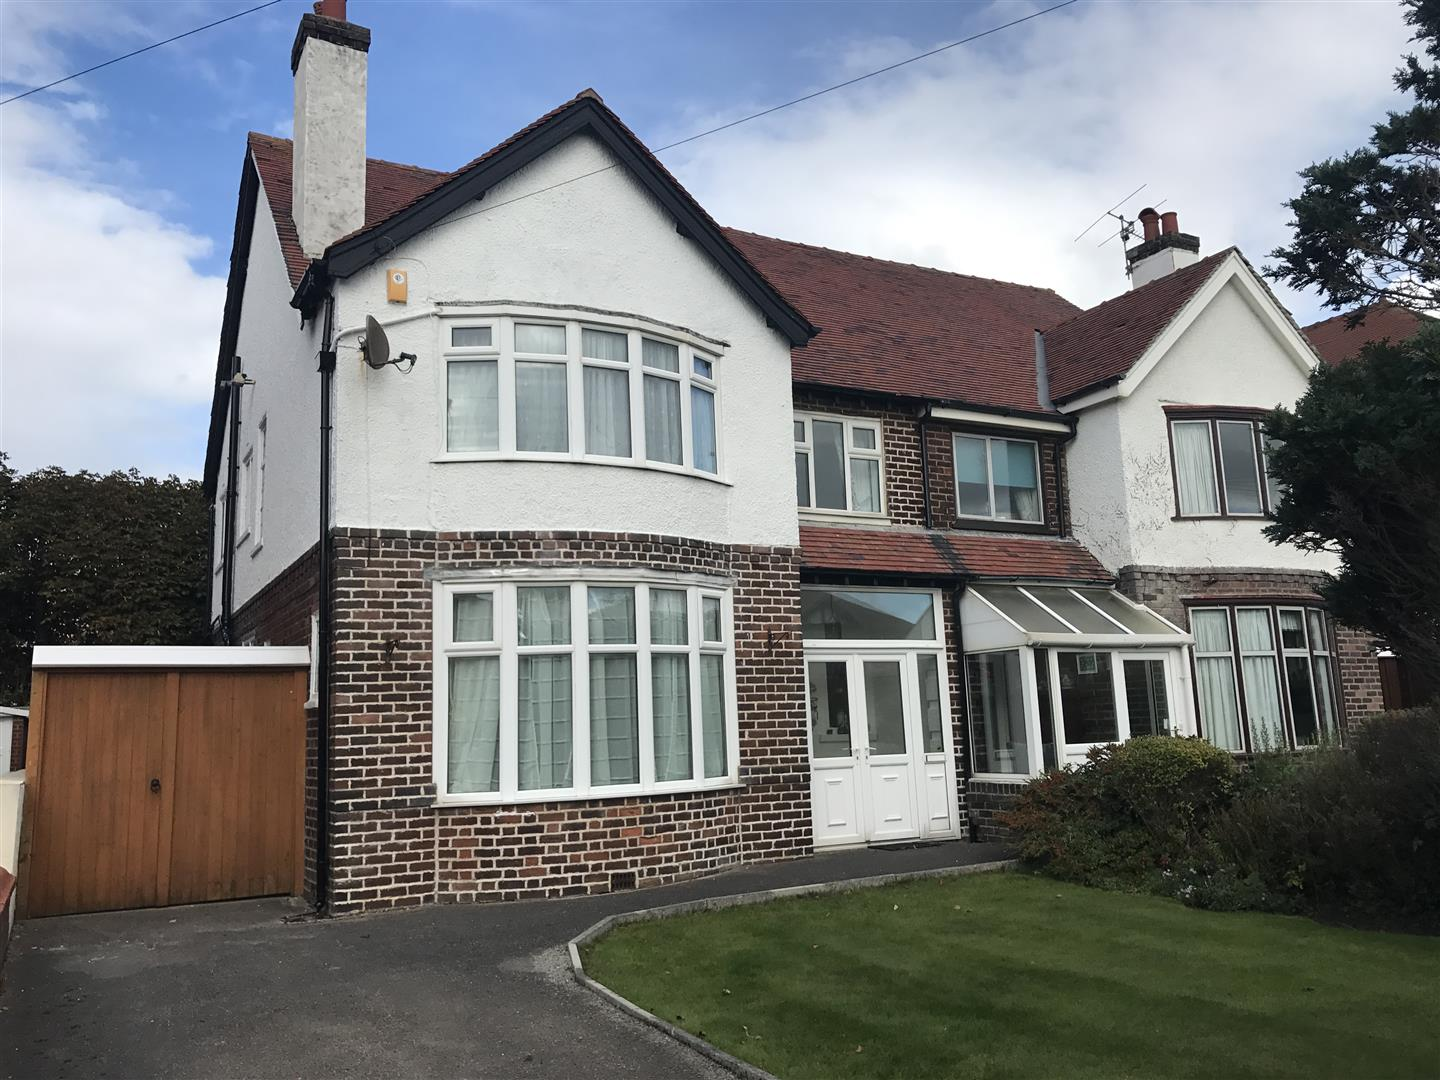 3 Bedrooms Semi Detached House for sale in Laverton Road, Lytham St. Annes